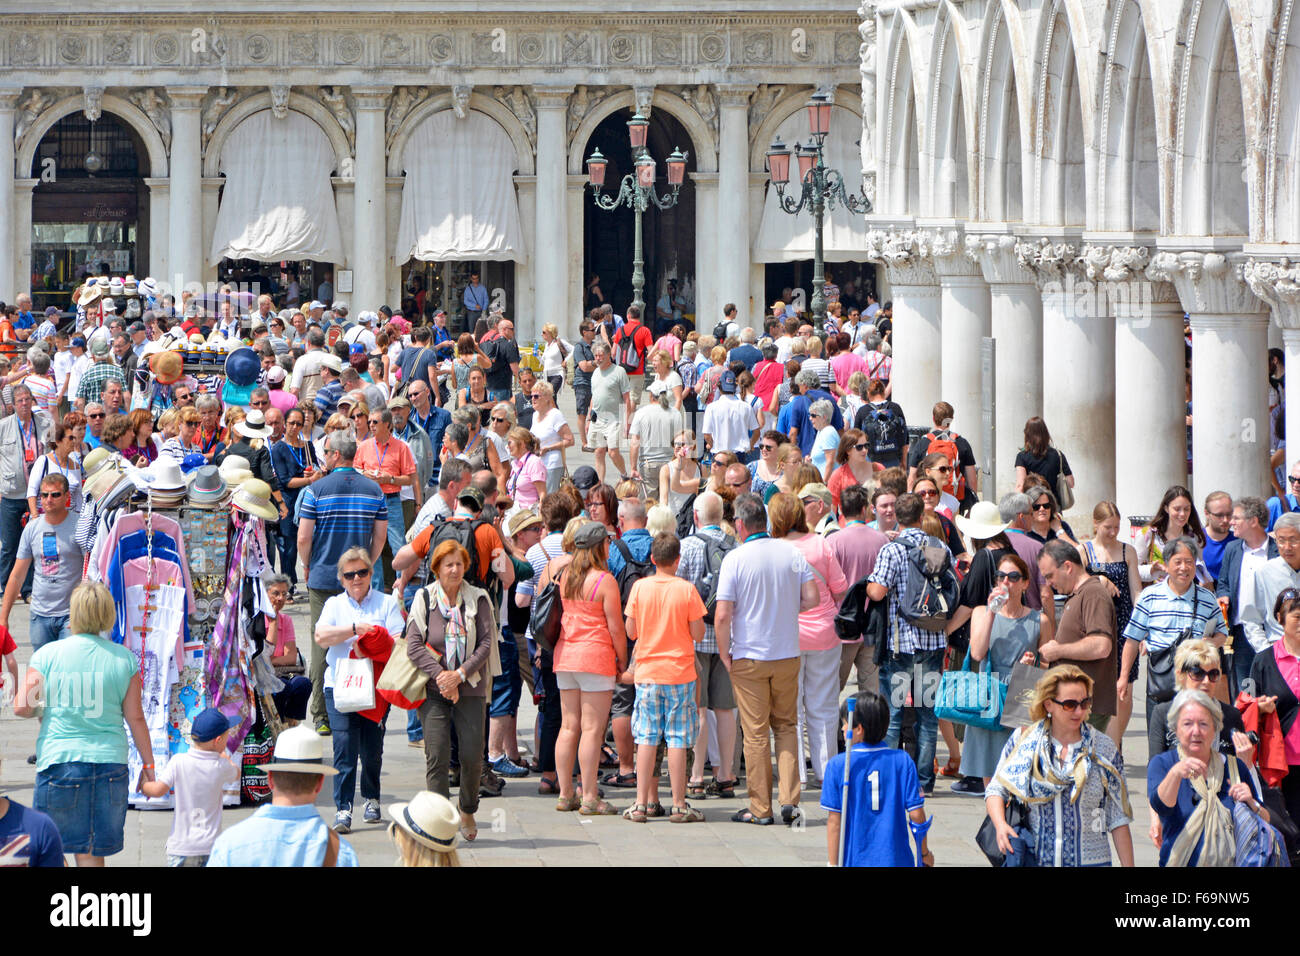 Venice crowd of people on the Riva degli Schiavoni promenade Italy Venice on a hot summers day - Stock Image